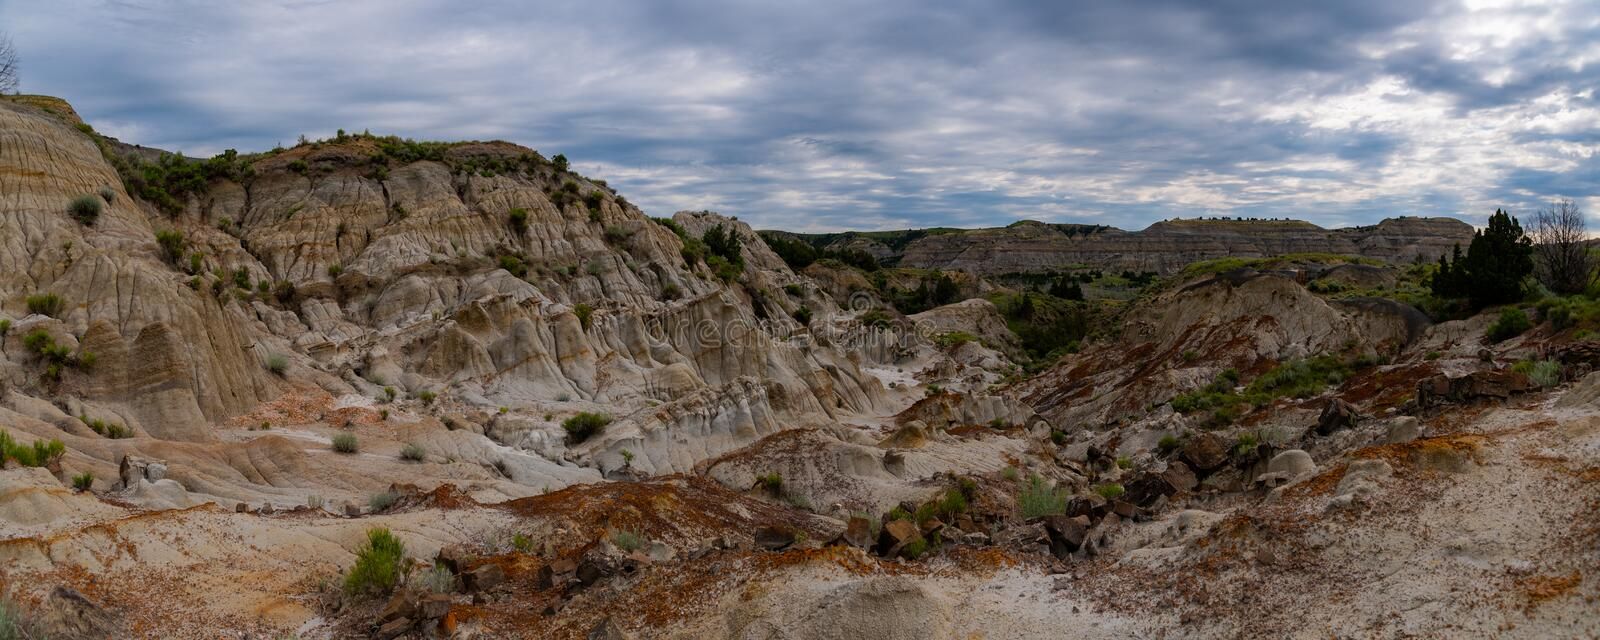 Paysages de Theodore Roosevelt National Park en juillet photo stock